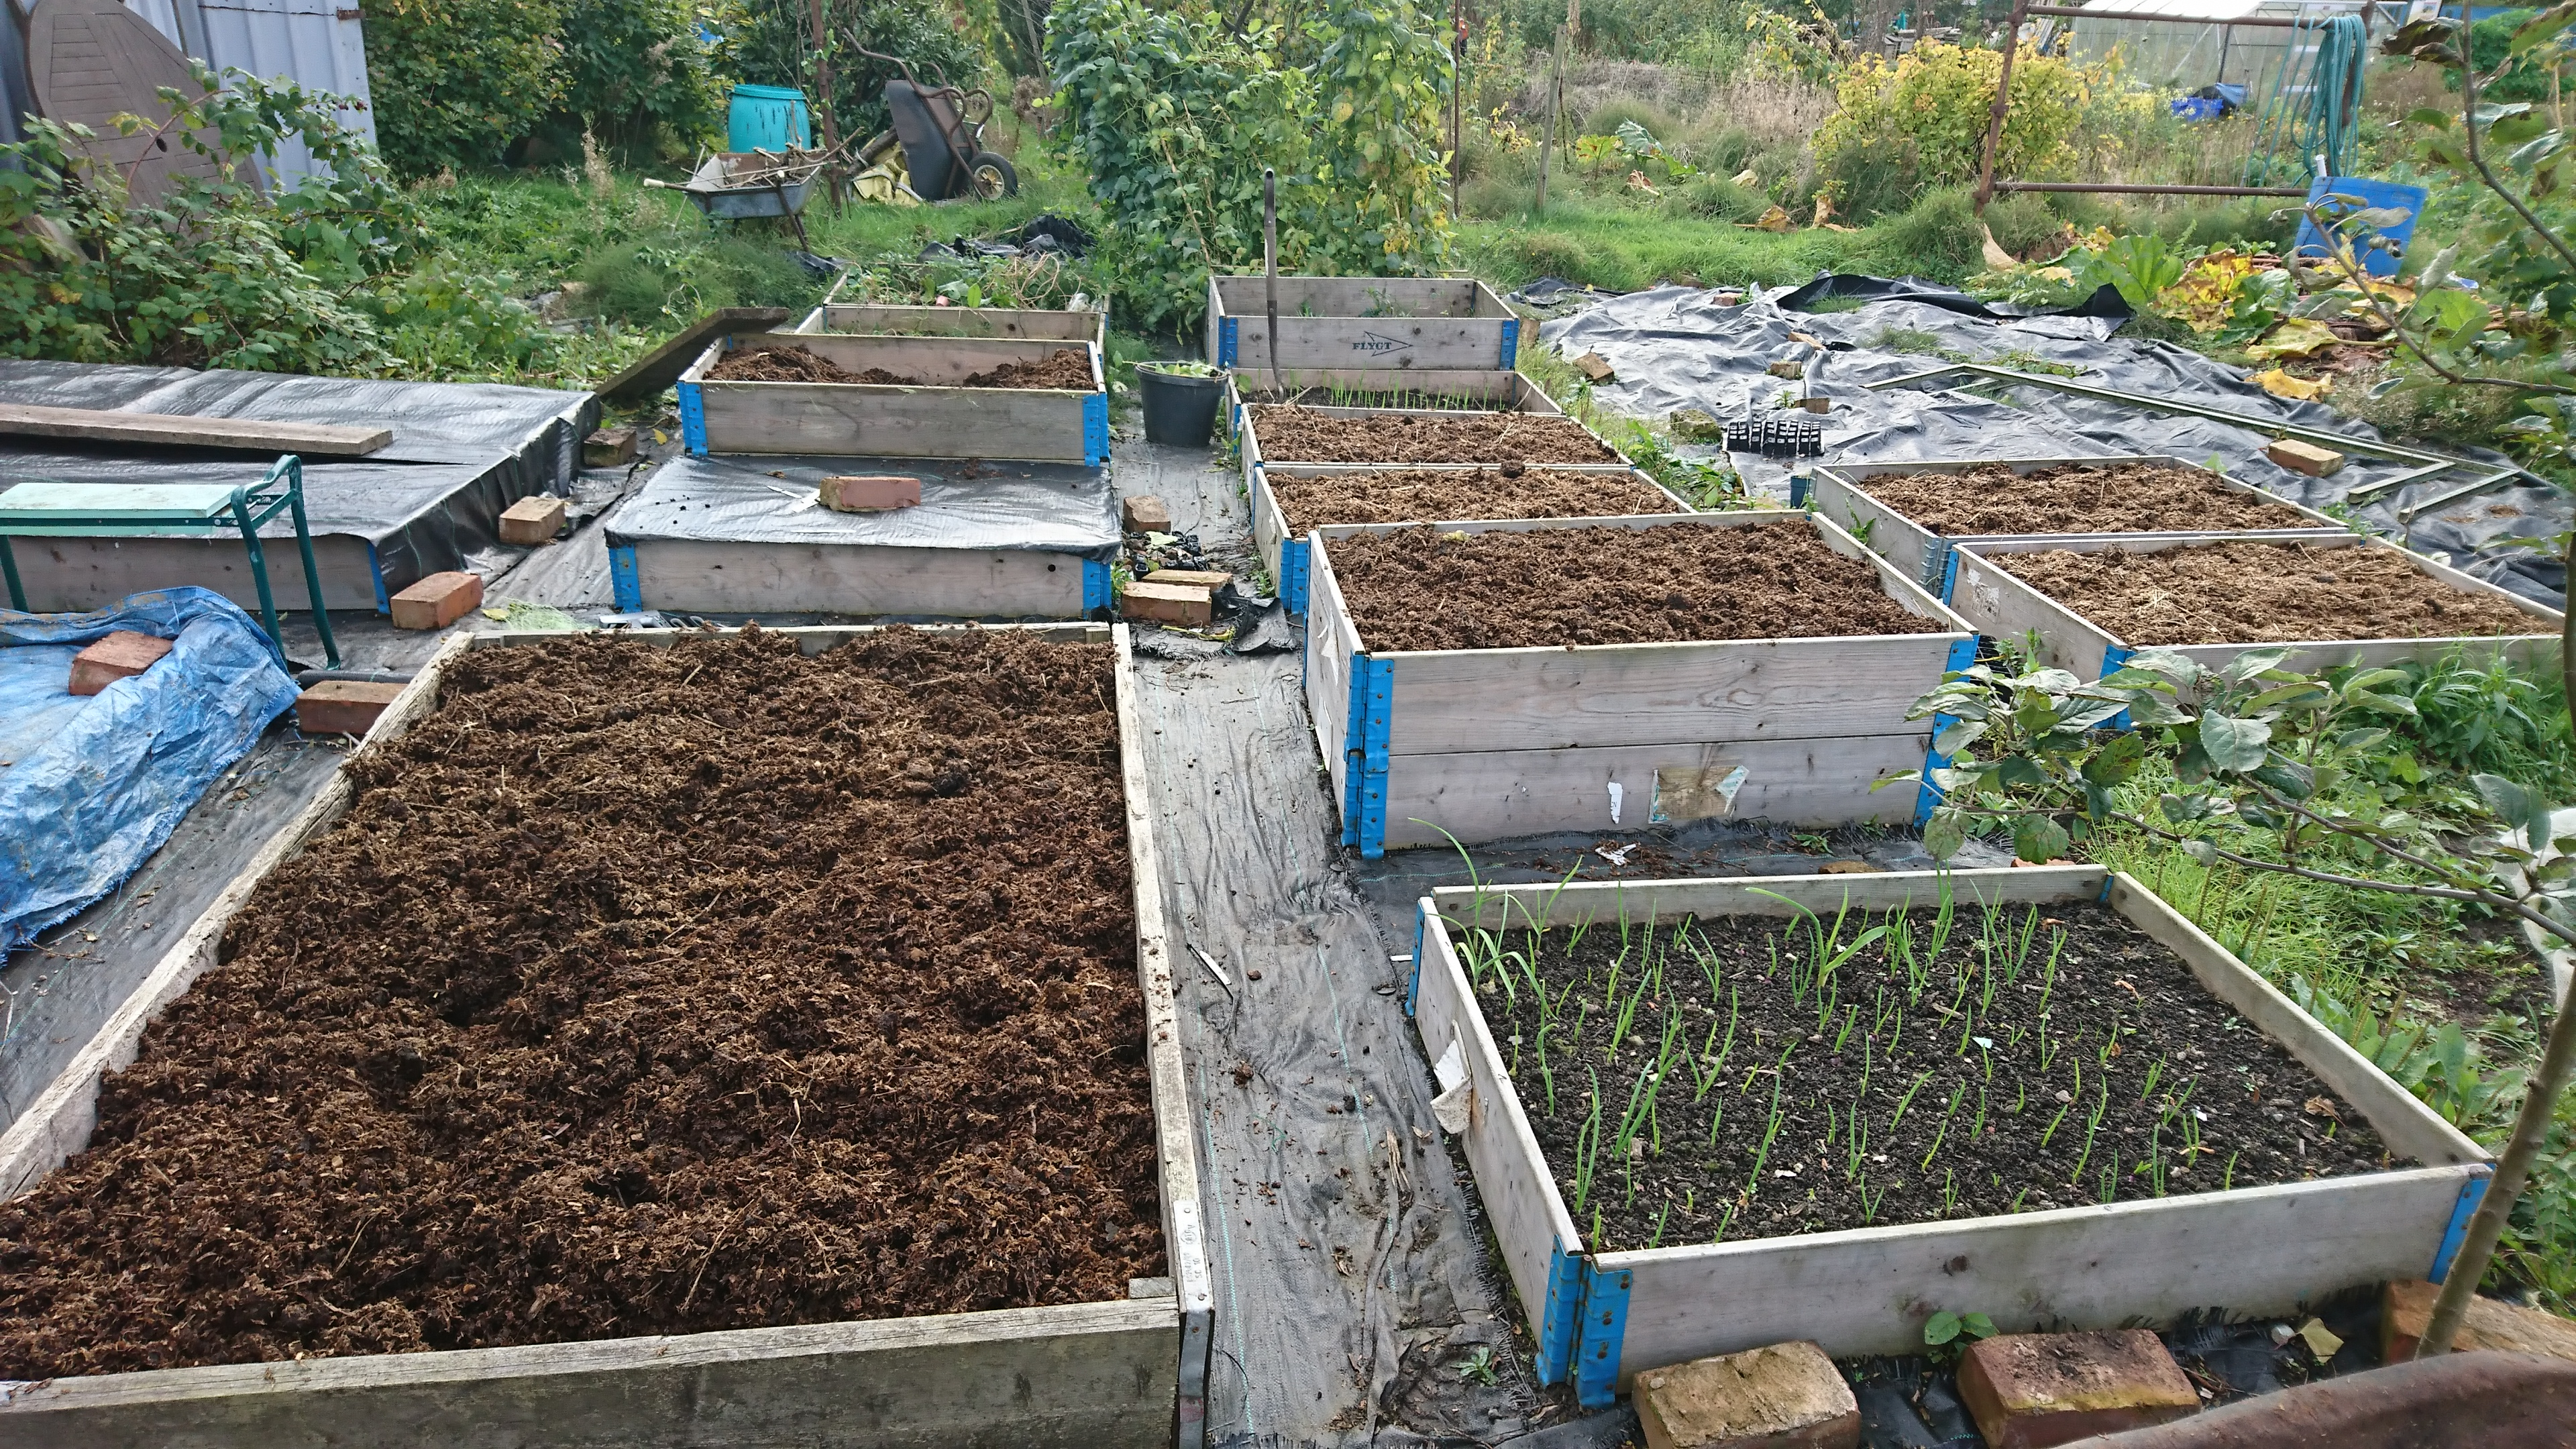 raised beds filled with manure